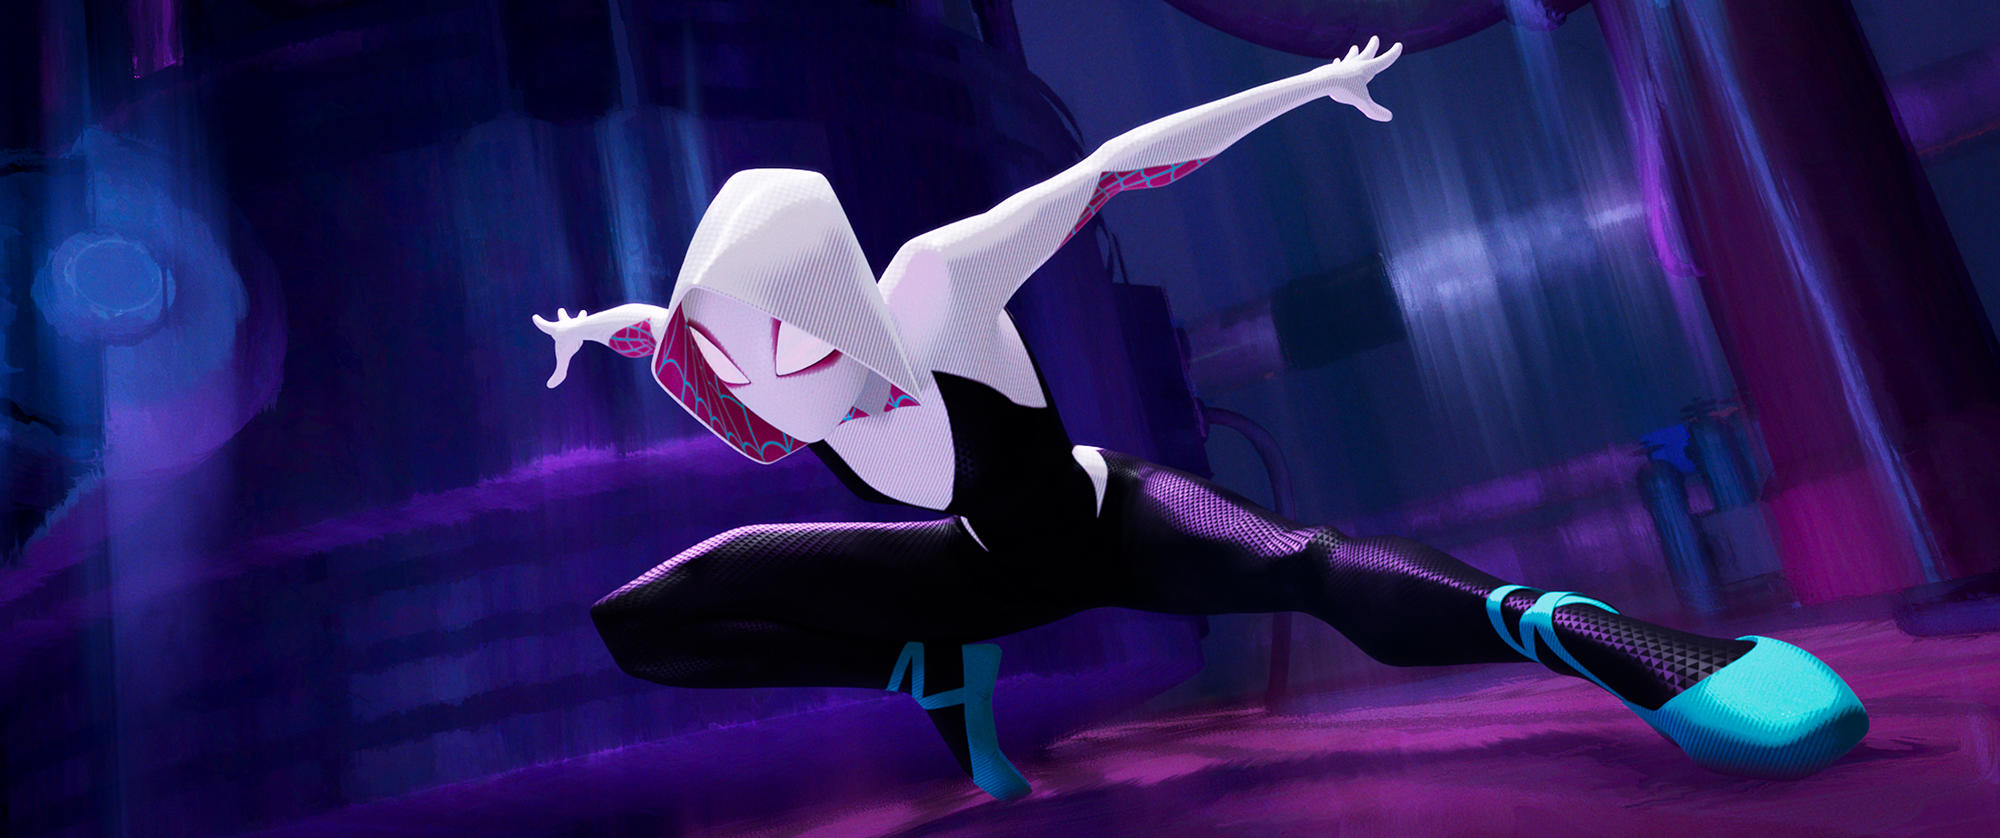 "Spider-Gwen in ""Spider-Man:Into the Spider-Verse"""